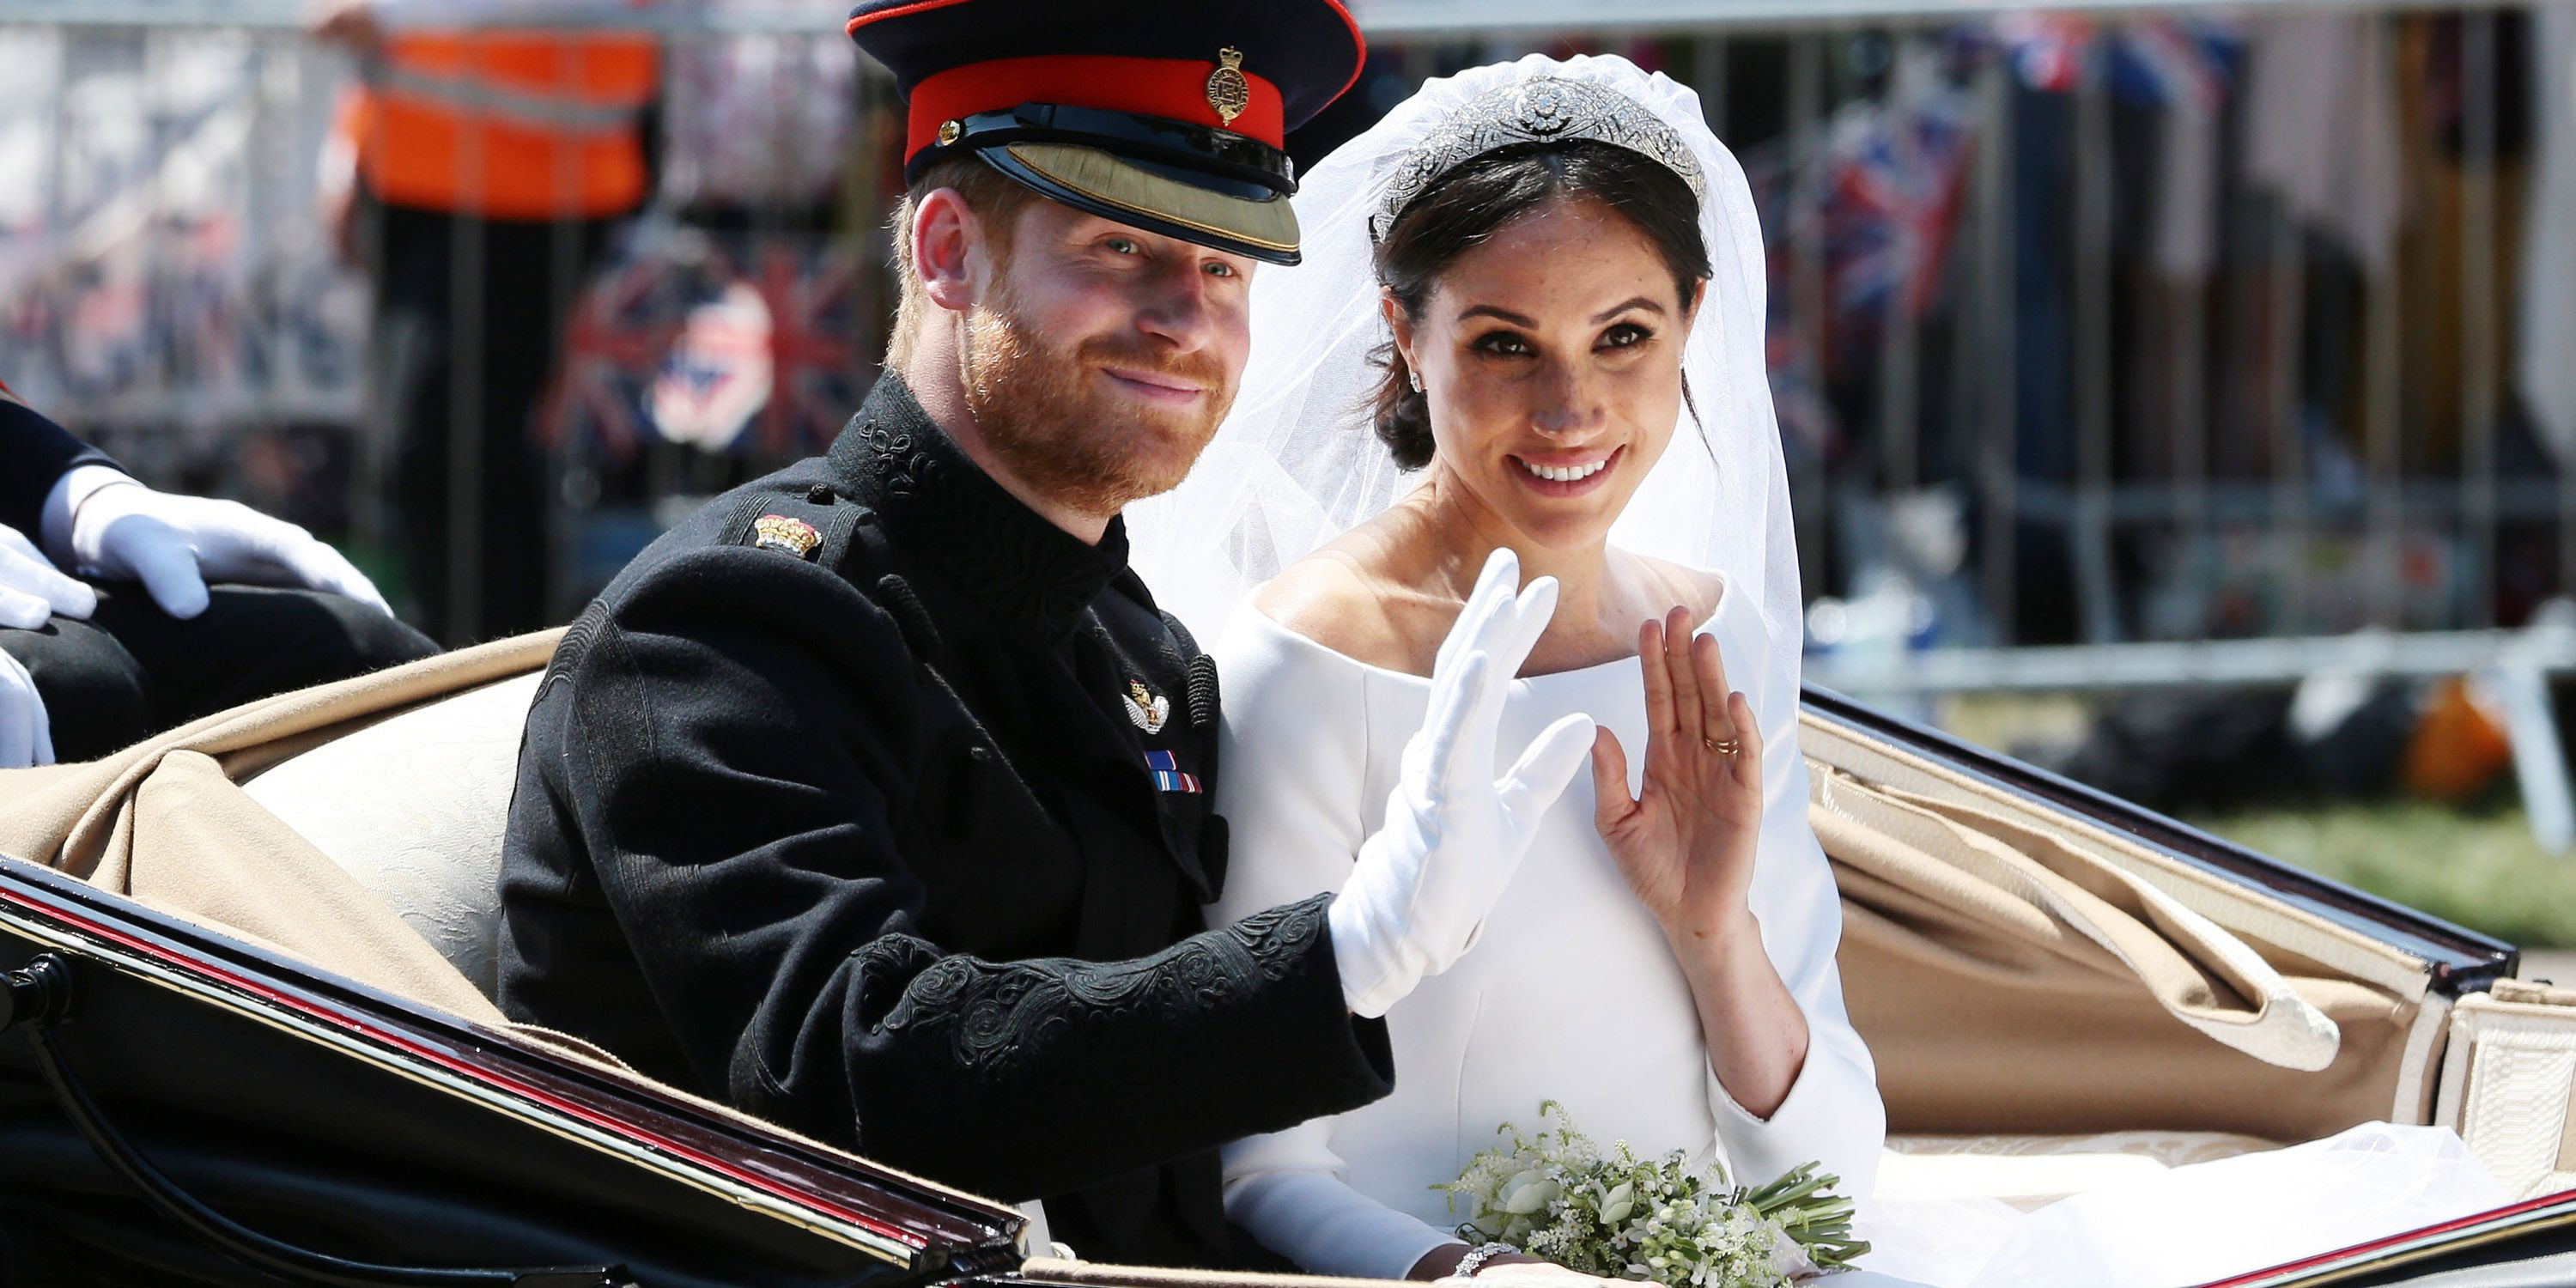 royal wedding Prince harry Meghan Markle carriage